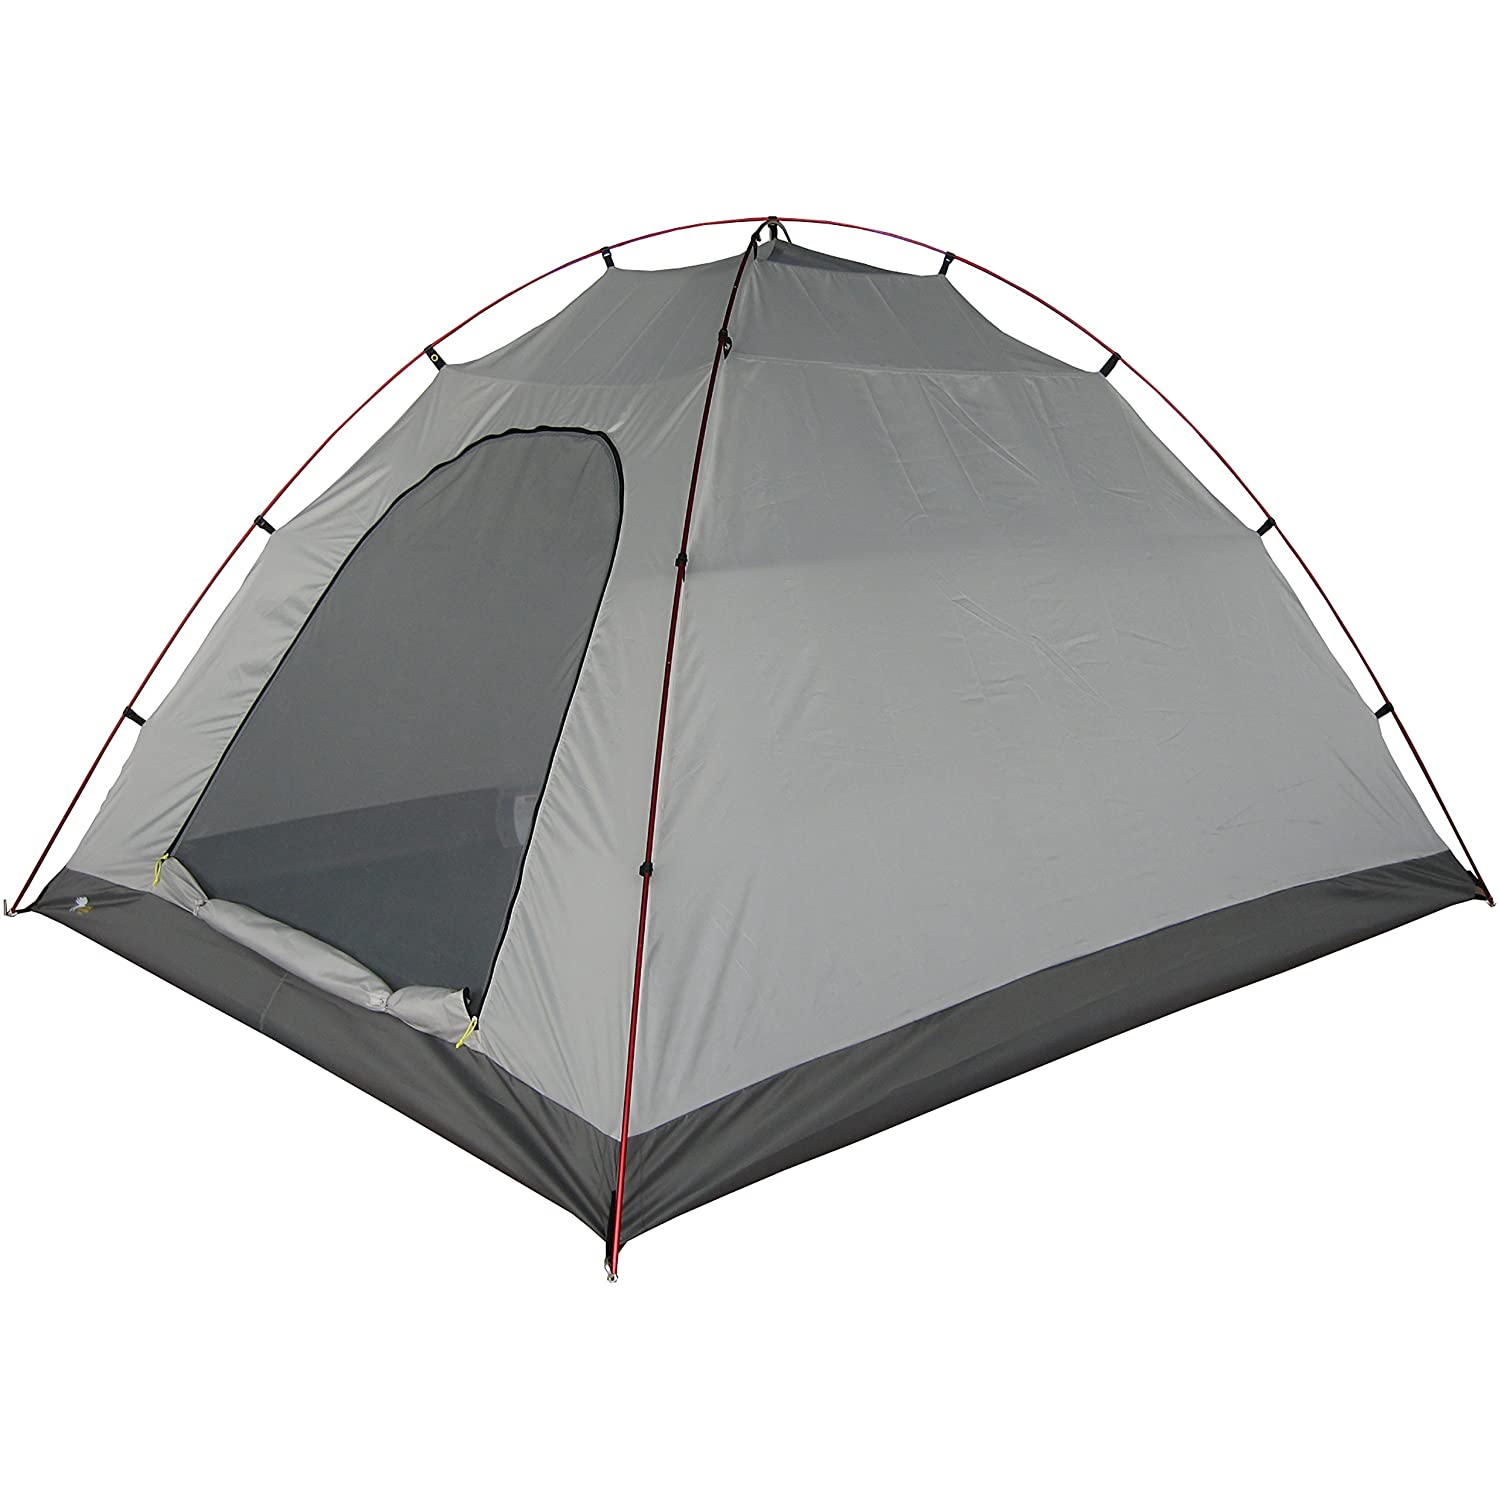 High Peak Outdoors Basecamp 4 Person 4-Season Expedition-Quality Backpacking Tent